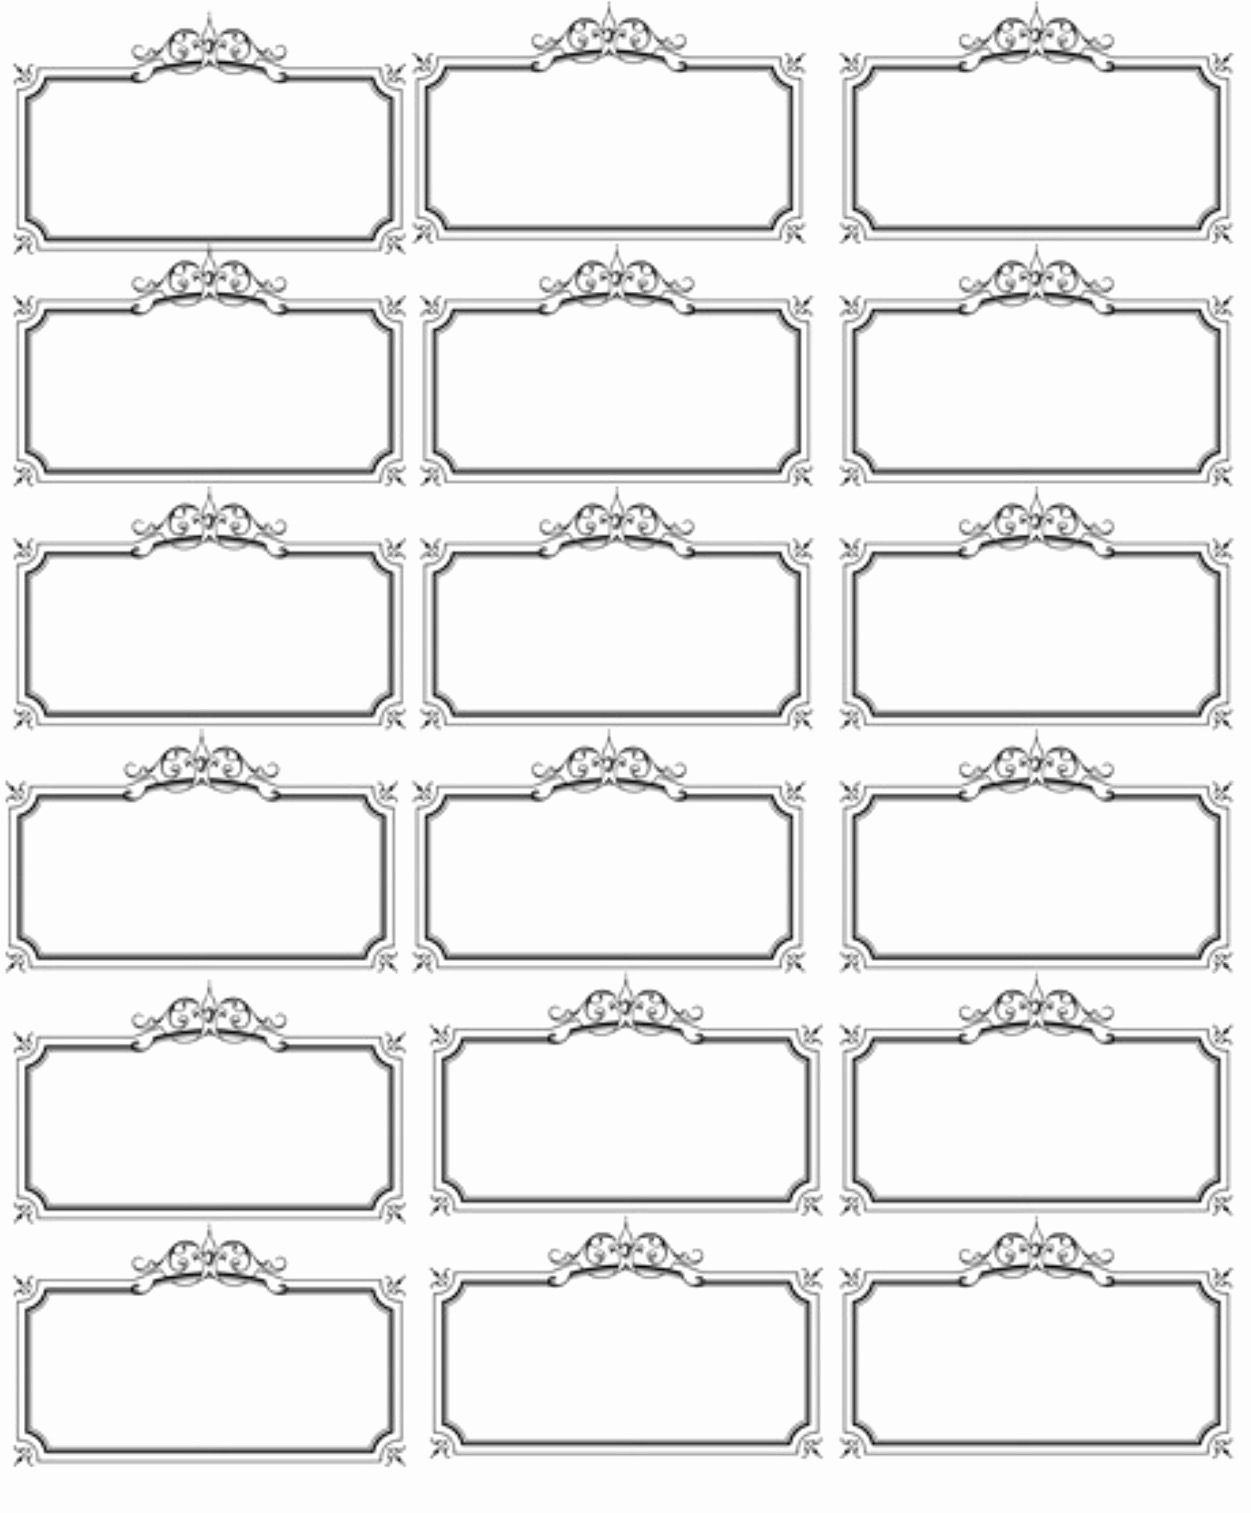 Name Tag Template Free Elegant Pin by Dears Nov On Labels Pinterest